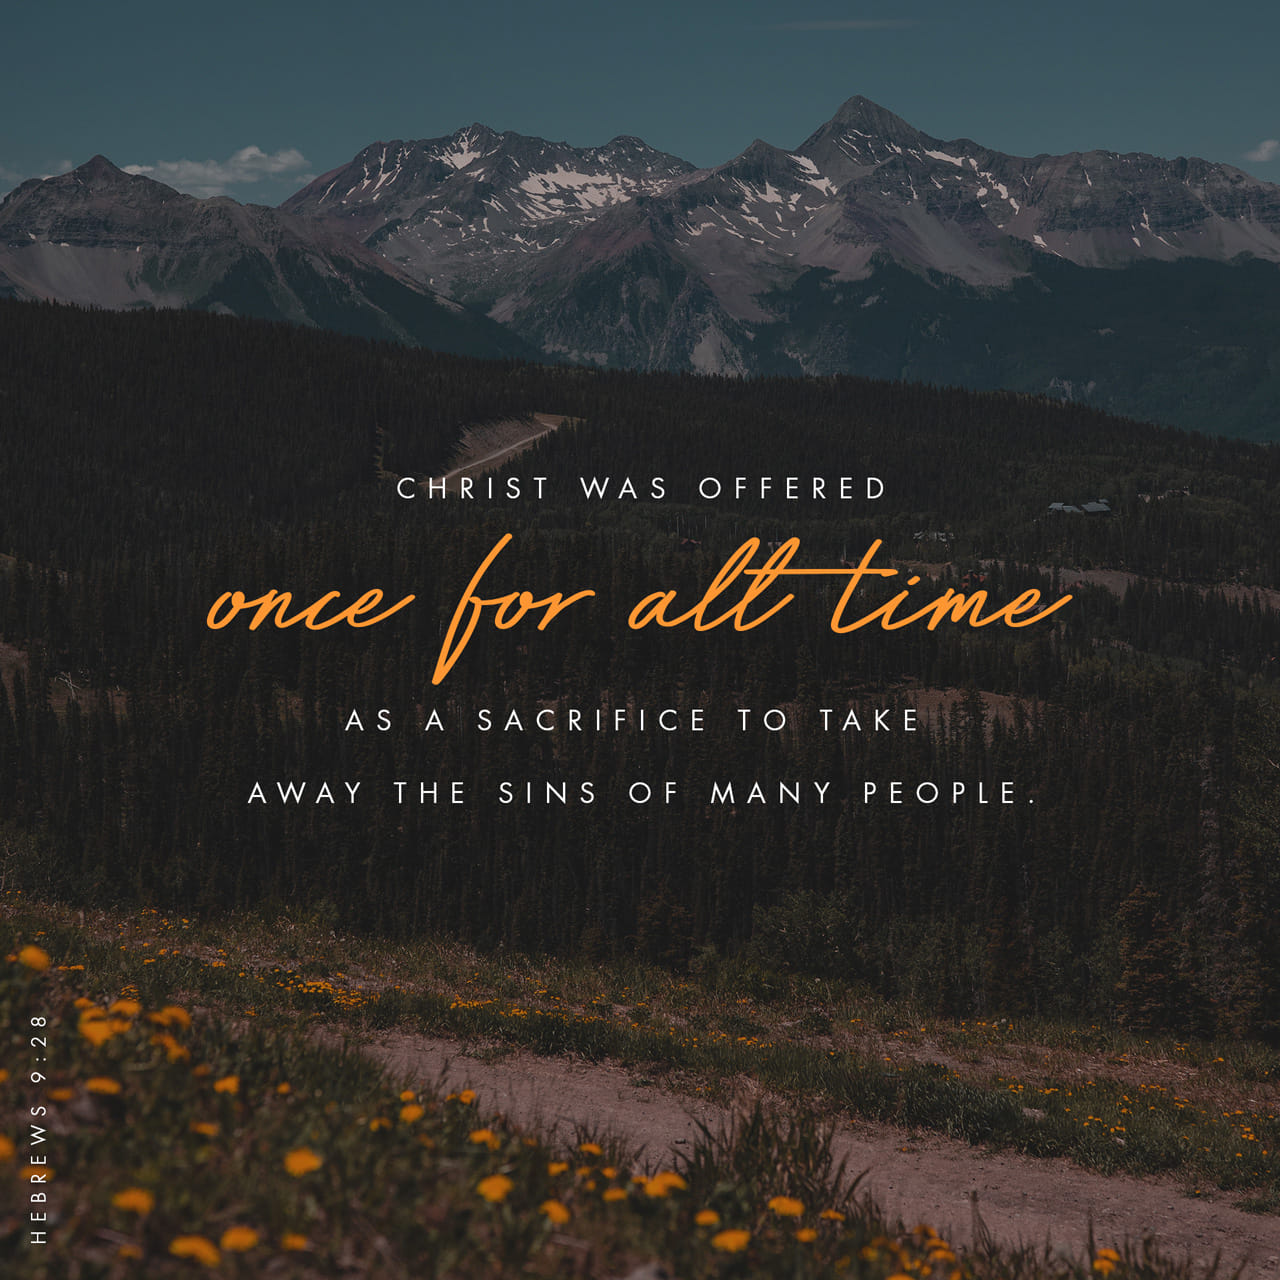 Hebrews 9:28 so Christ was offered once to bear the sins of many. To those who eagerly wait for Him He will appear a second time, apart from sin, for salvation. | New King James Version (NKJV)